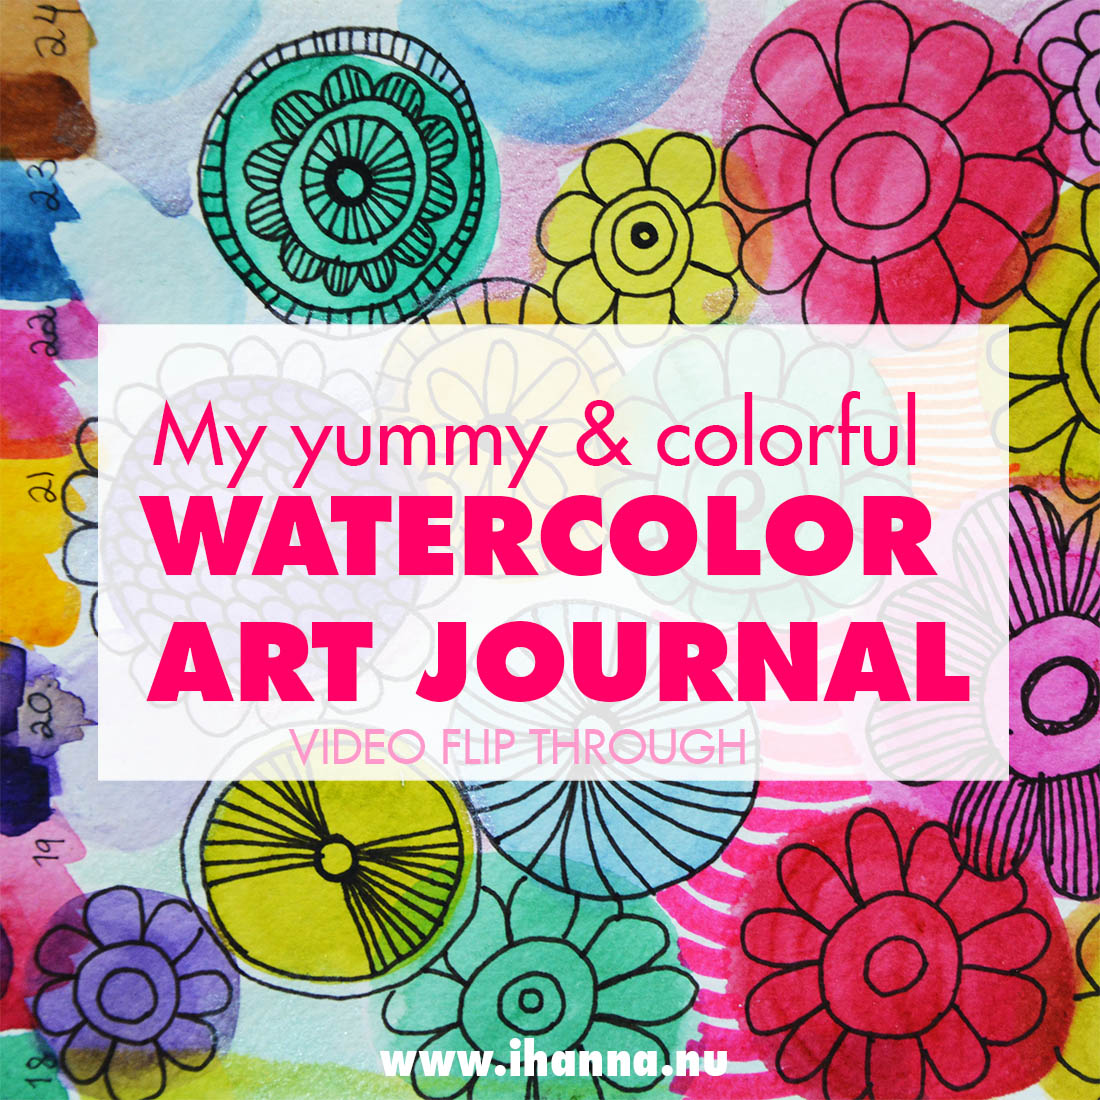 Watercolor Art Journal flip-through